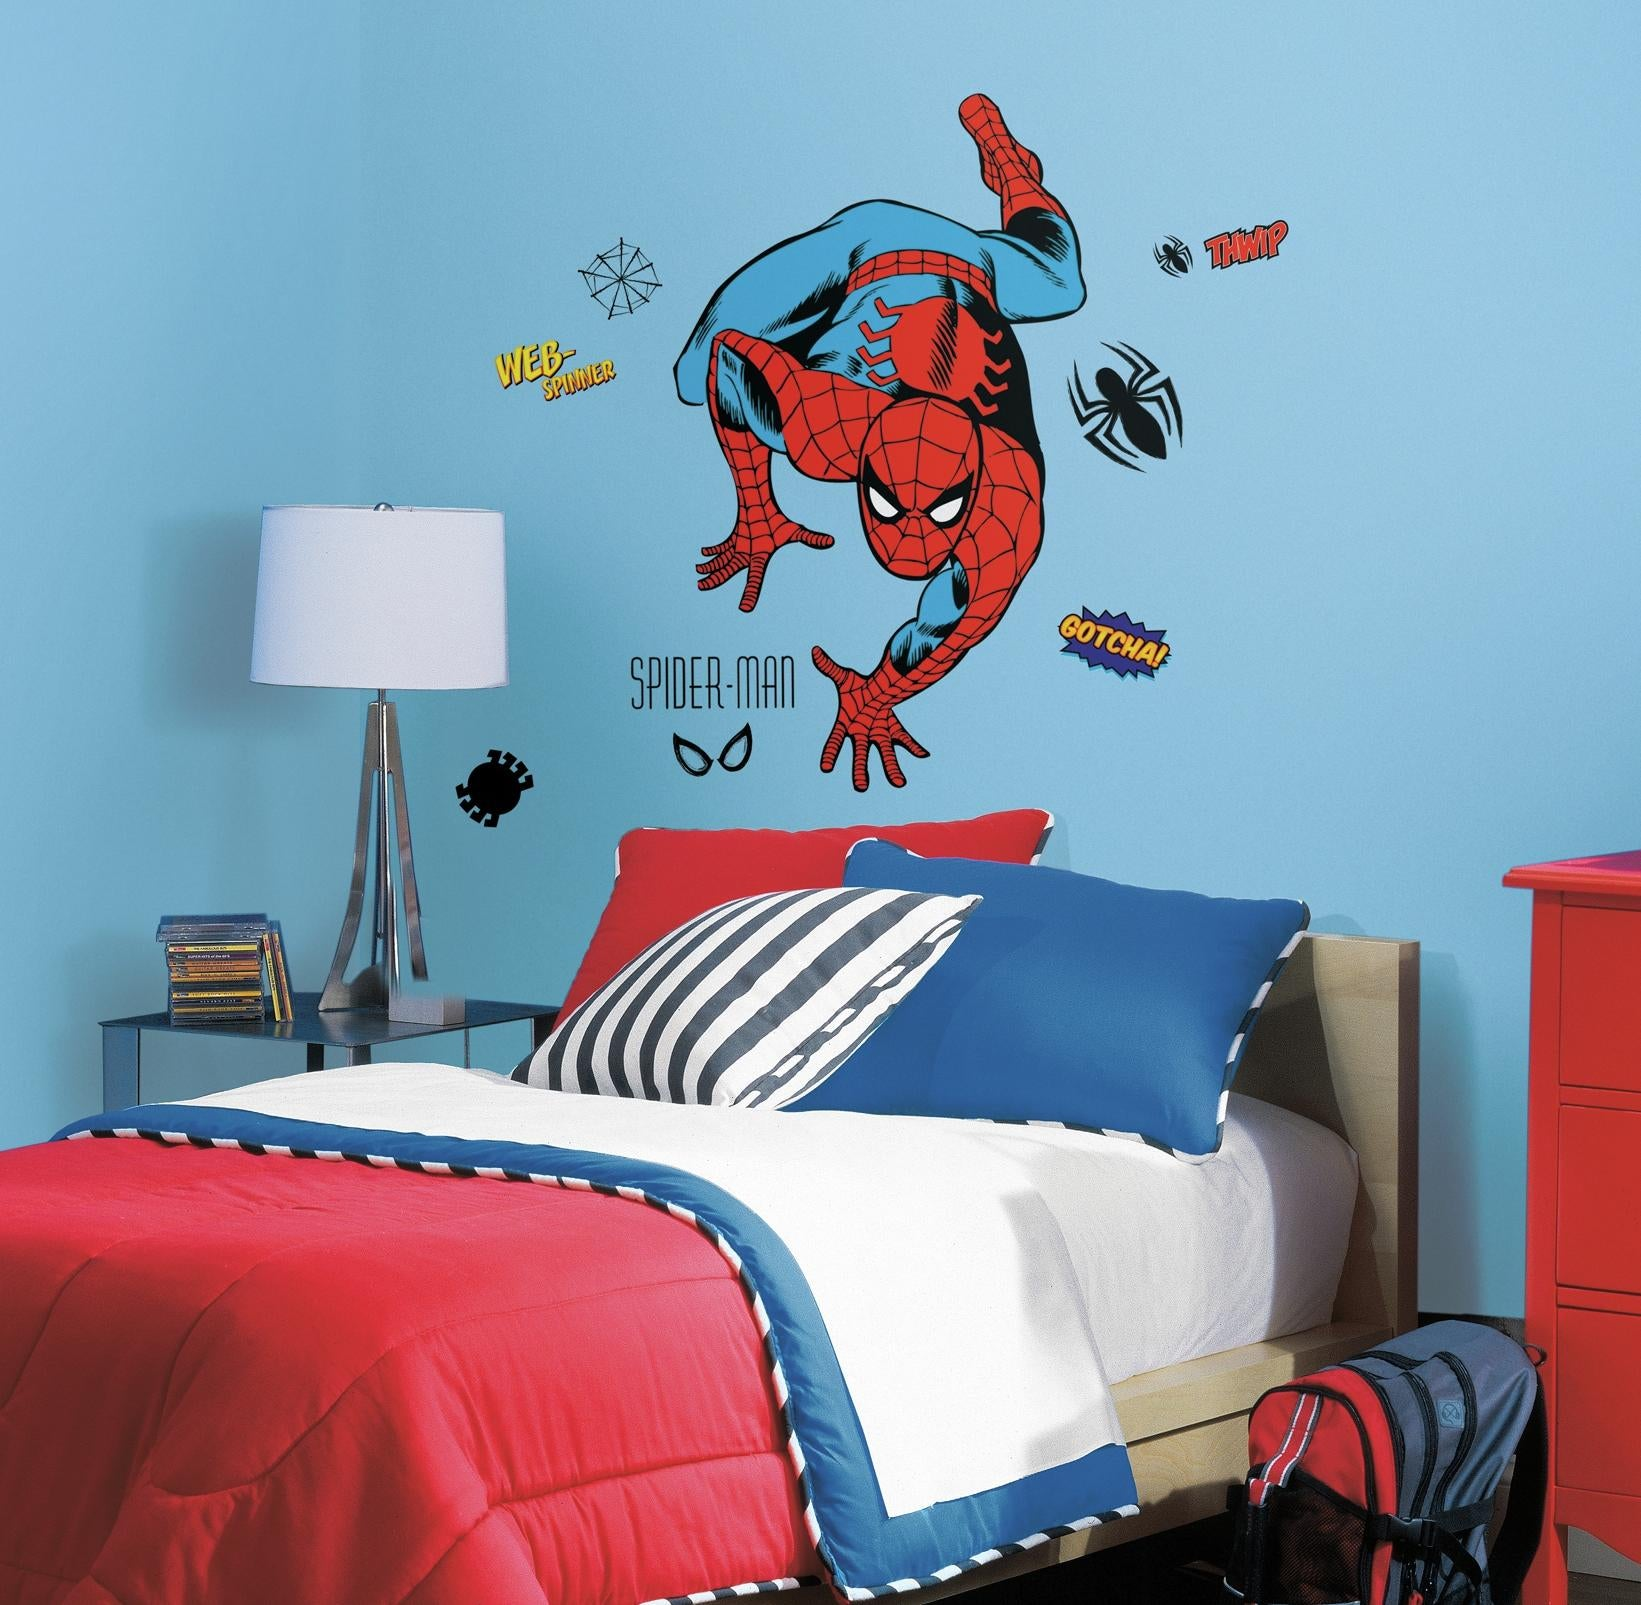 RMK2355GM Wall Stickers Wall Decor Wall Decals Super Hero Spiderman  Self Adhesive RoomMates Room Decor